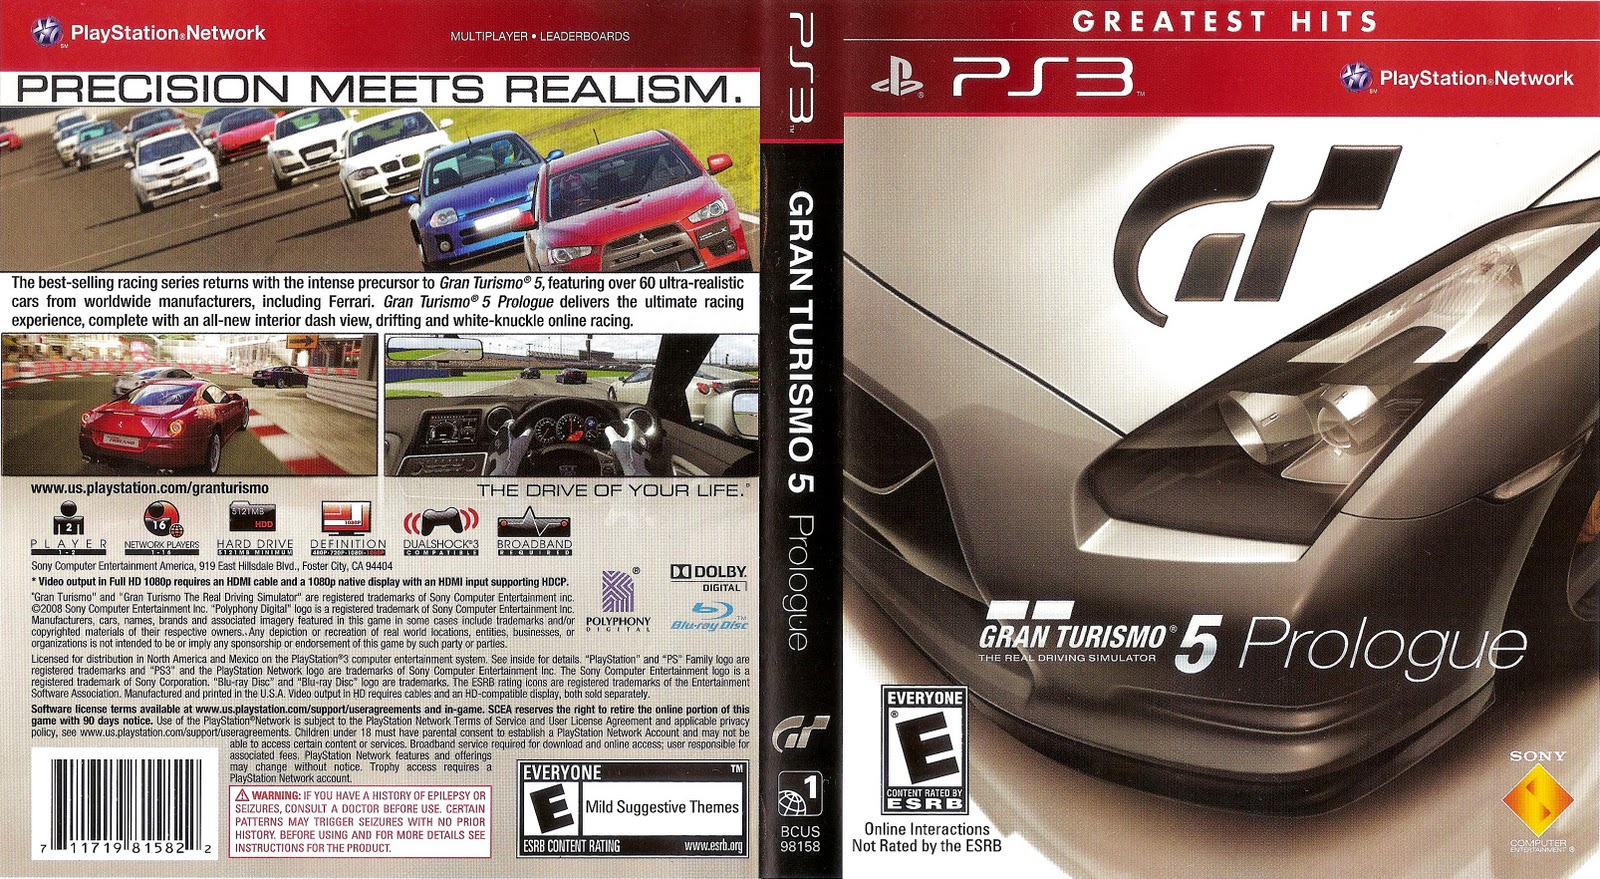 gran turismo 5 prologue greatest hits playstation ps3 precision meets reality 4948872960274 ebay. Black Bedroom Furniture Sets. Home Design Ideas